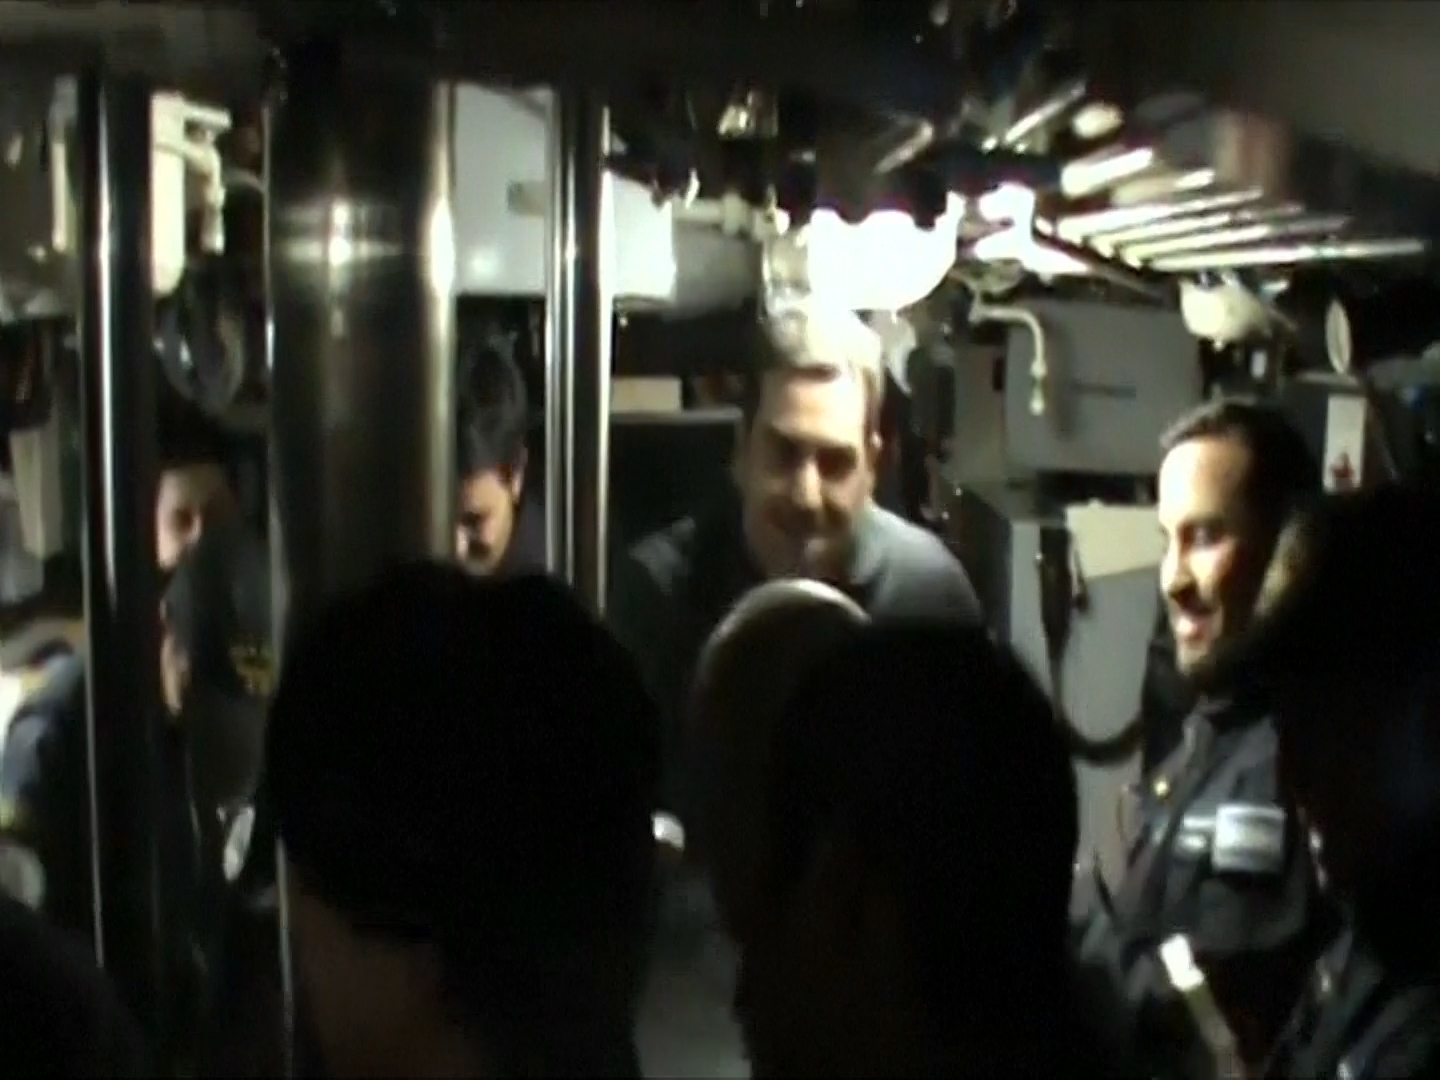 watch-moment-crew-of-missing-argentine-submarine-celebrate-its-return-to-service-in-2014